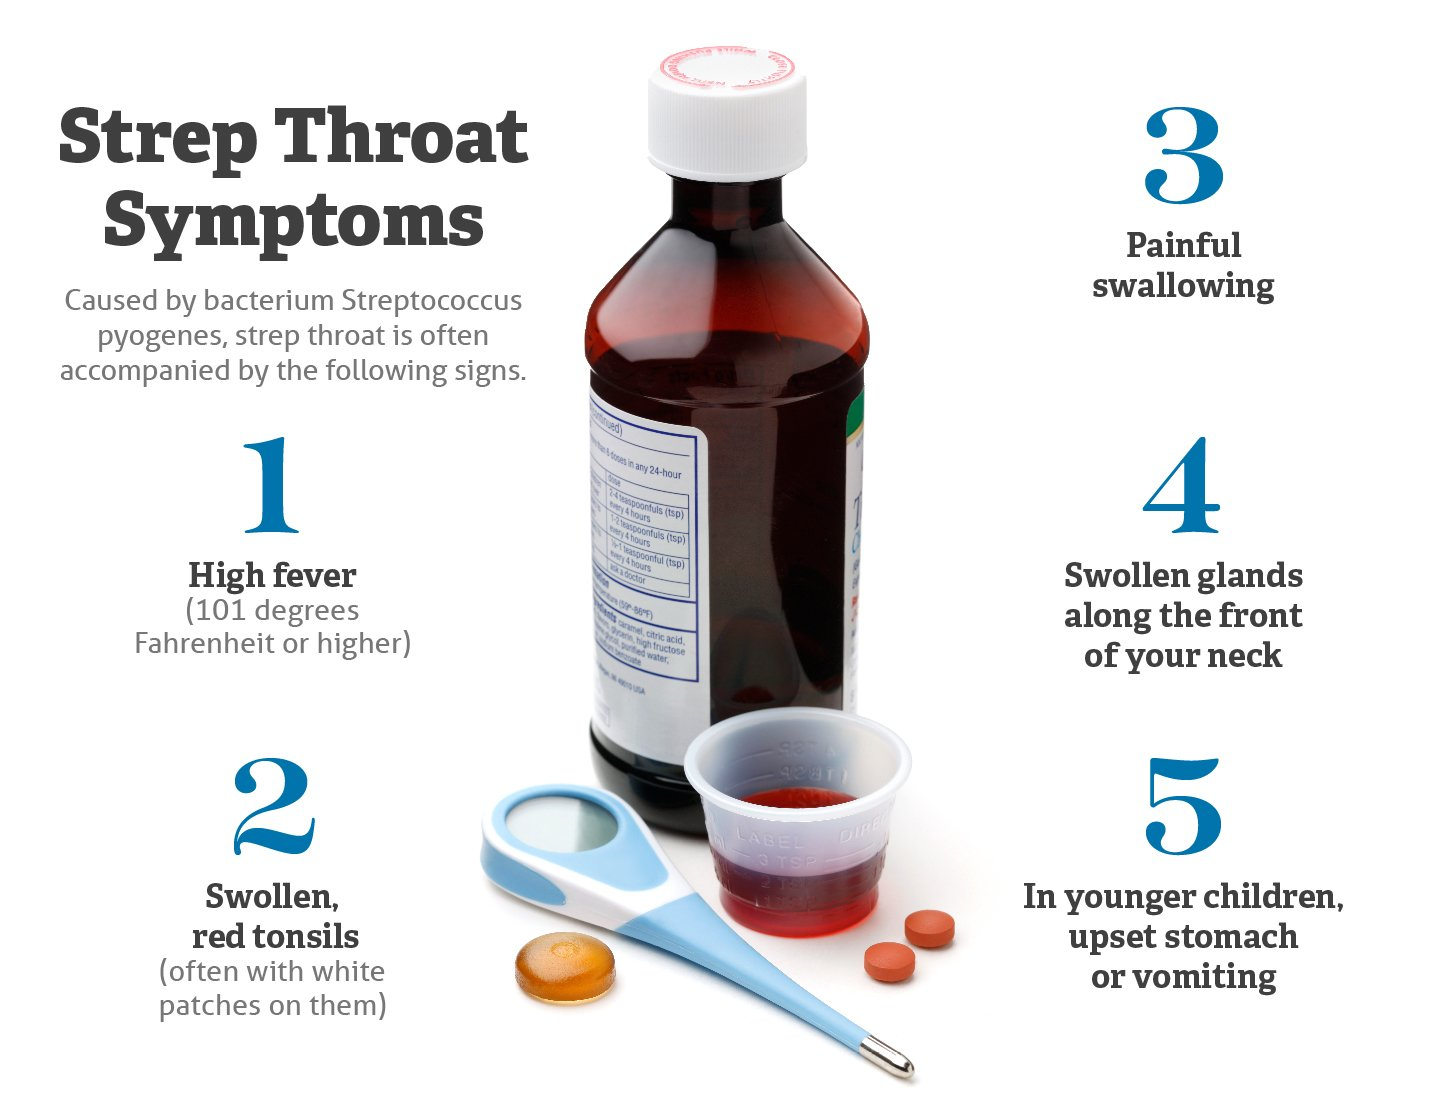 Fever Is Accompanied By A Sore Throat When Swallowing And A Rash Appears On The Hands?